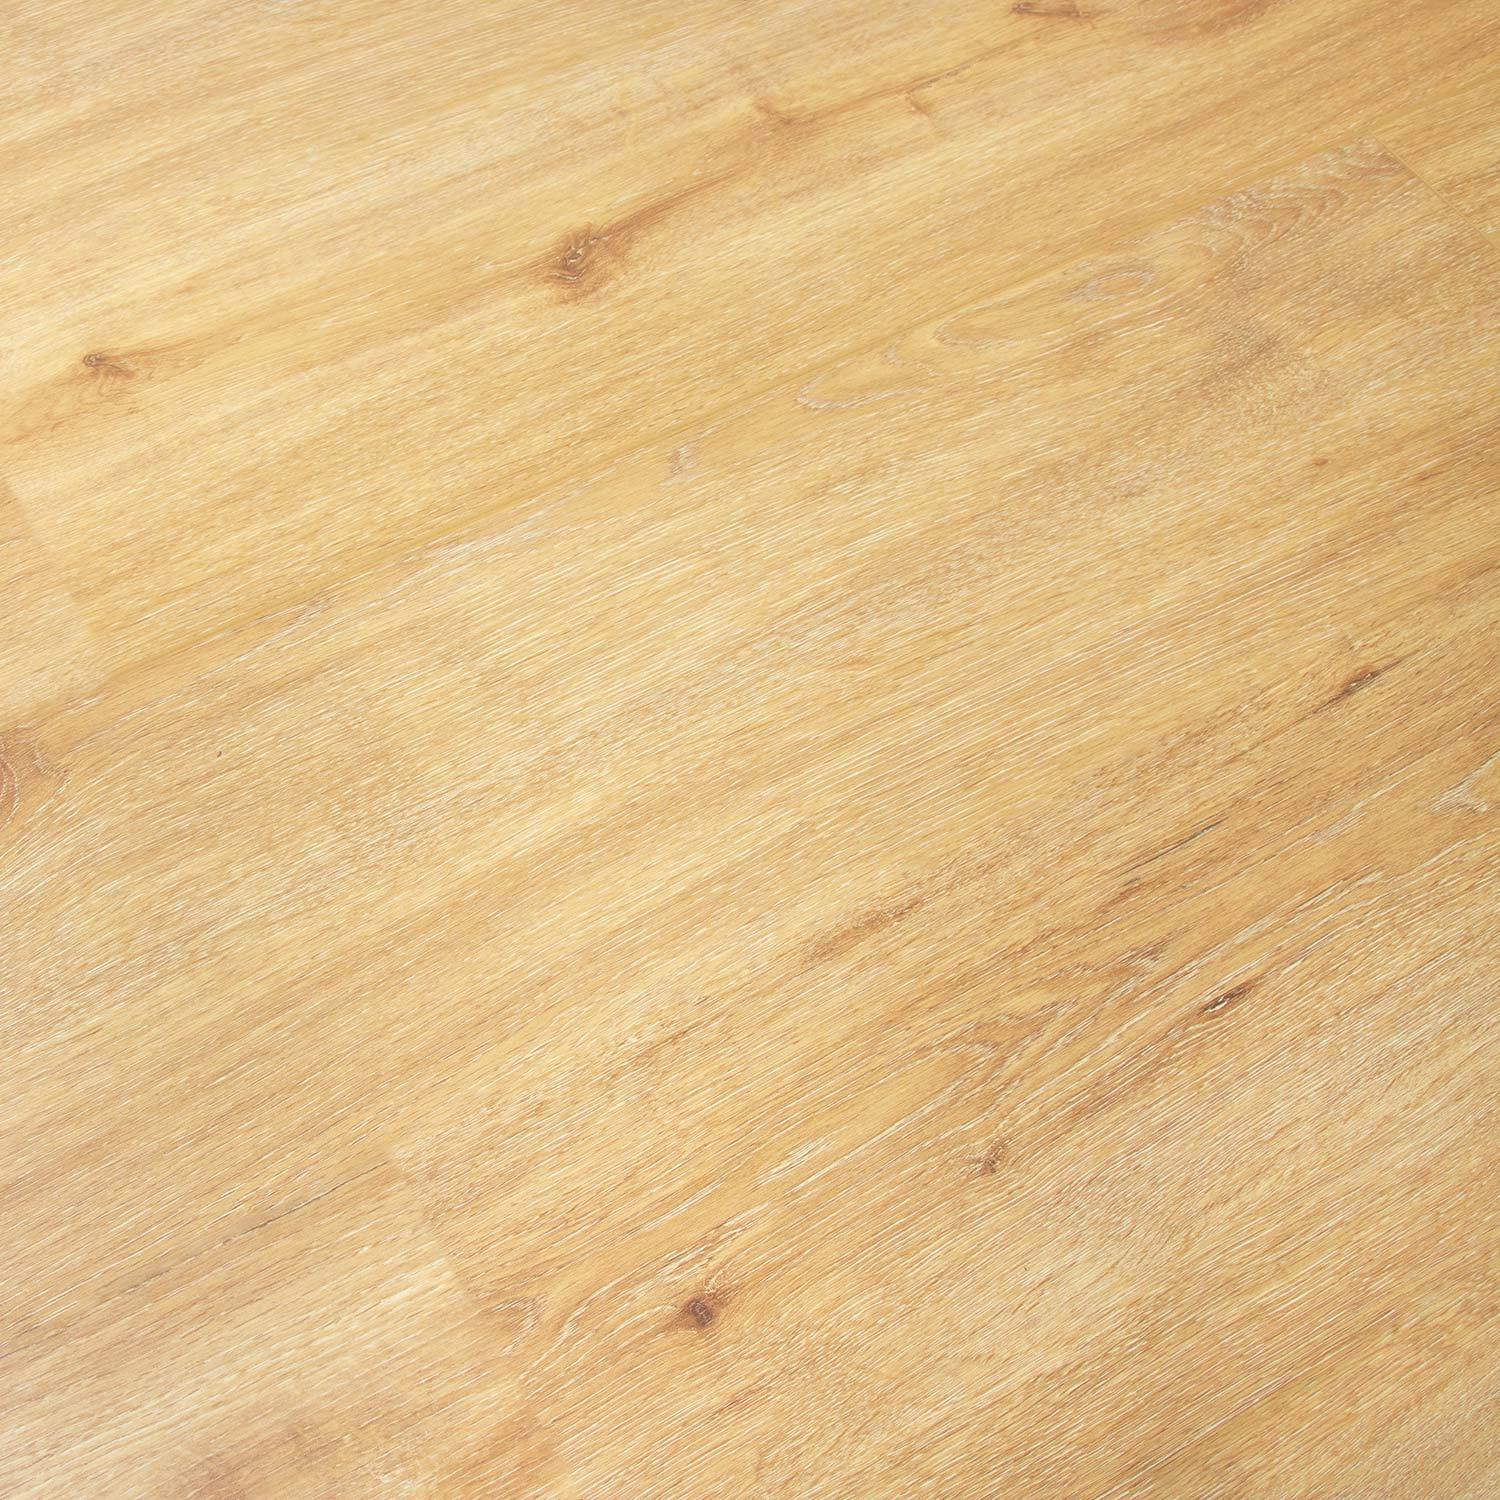 Sisu Laminate Natural Warm Oak